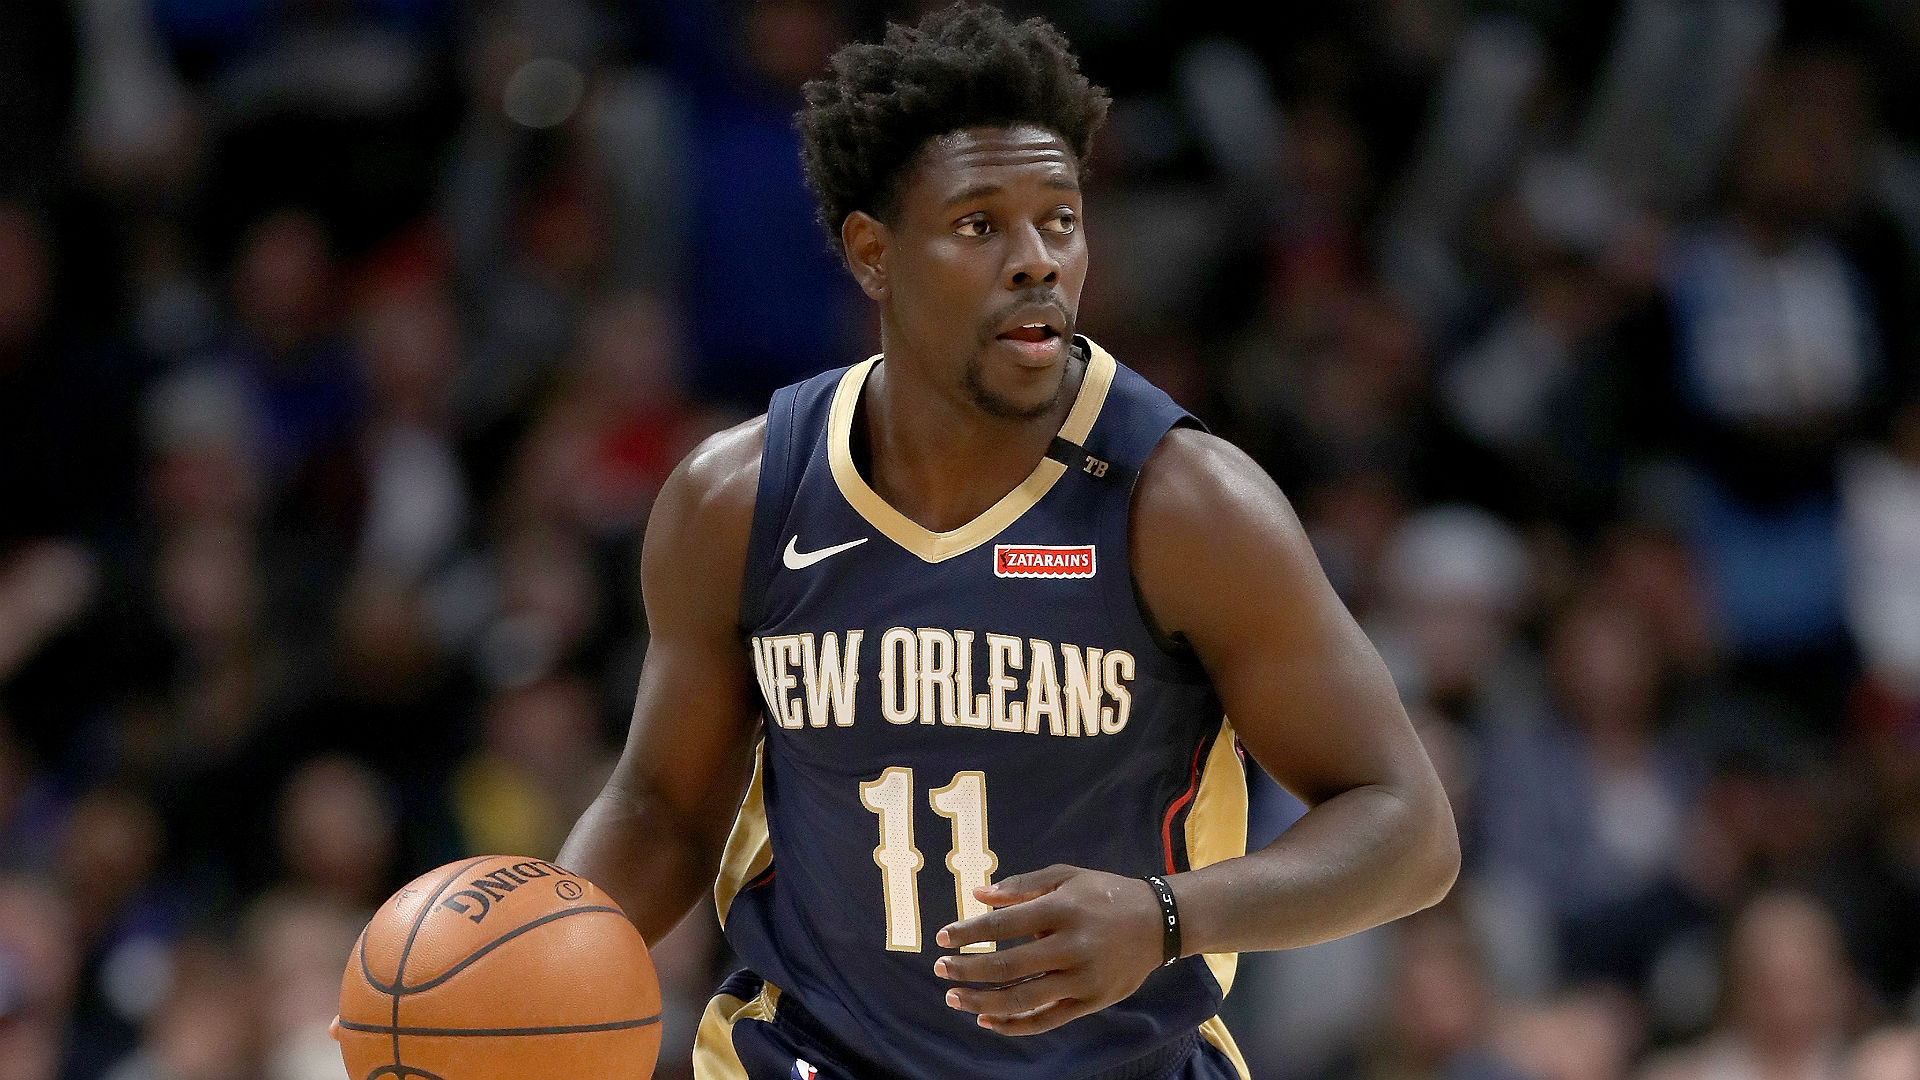 Celtics trade rumors: Boston has looked into deal for Pelicans' Jrue Holiday